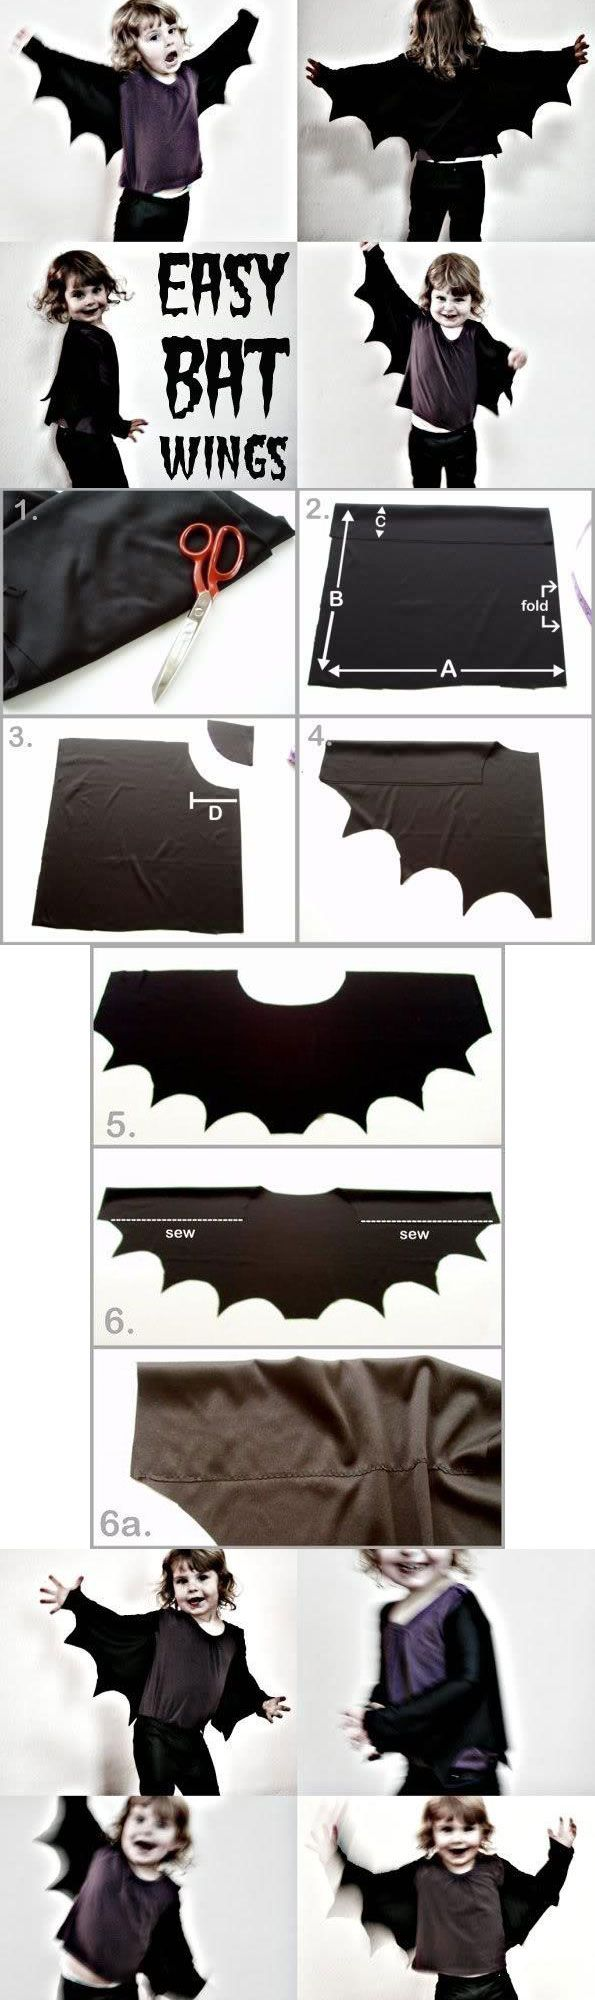 bat wings thx @TG